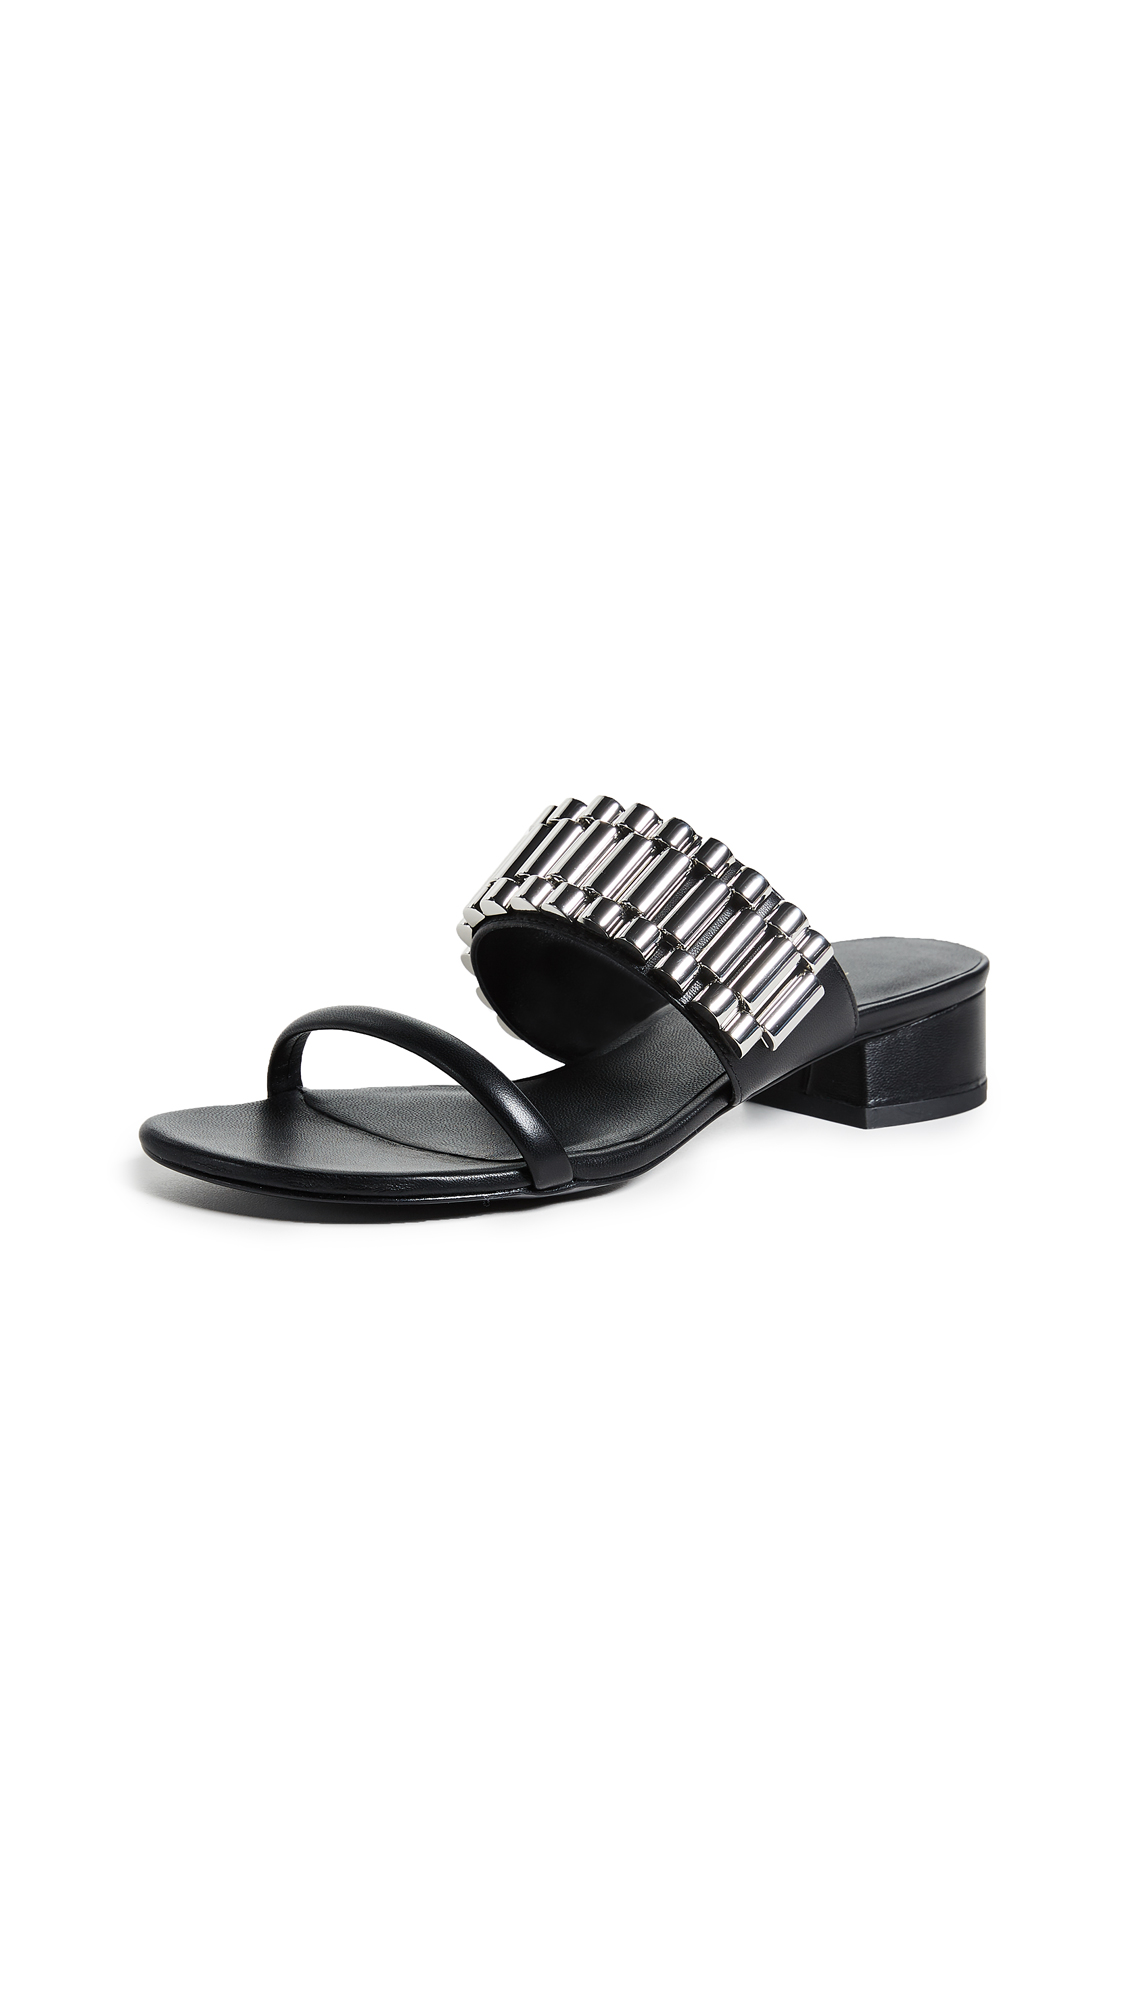 3.1 Phillip Lim Drum 30mm Watch Strap Sandals - Black